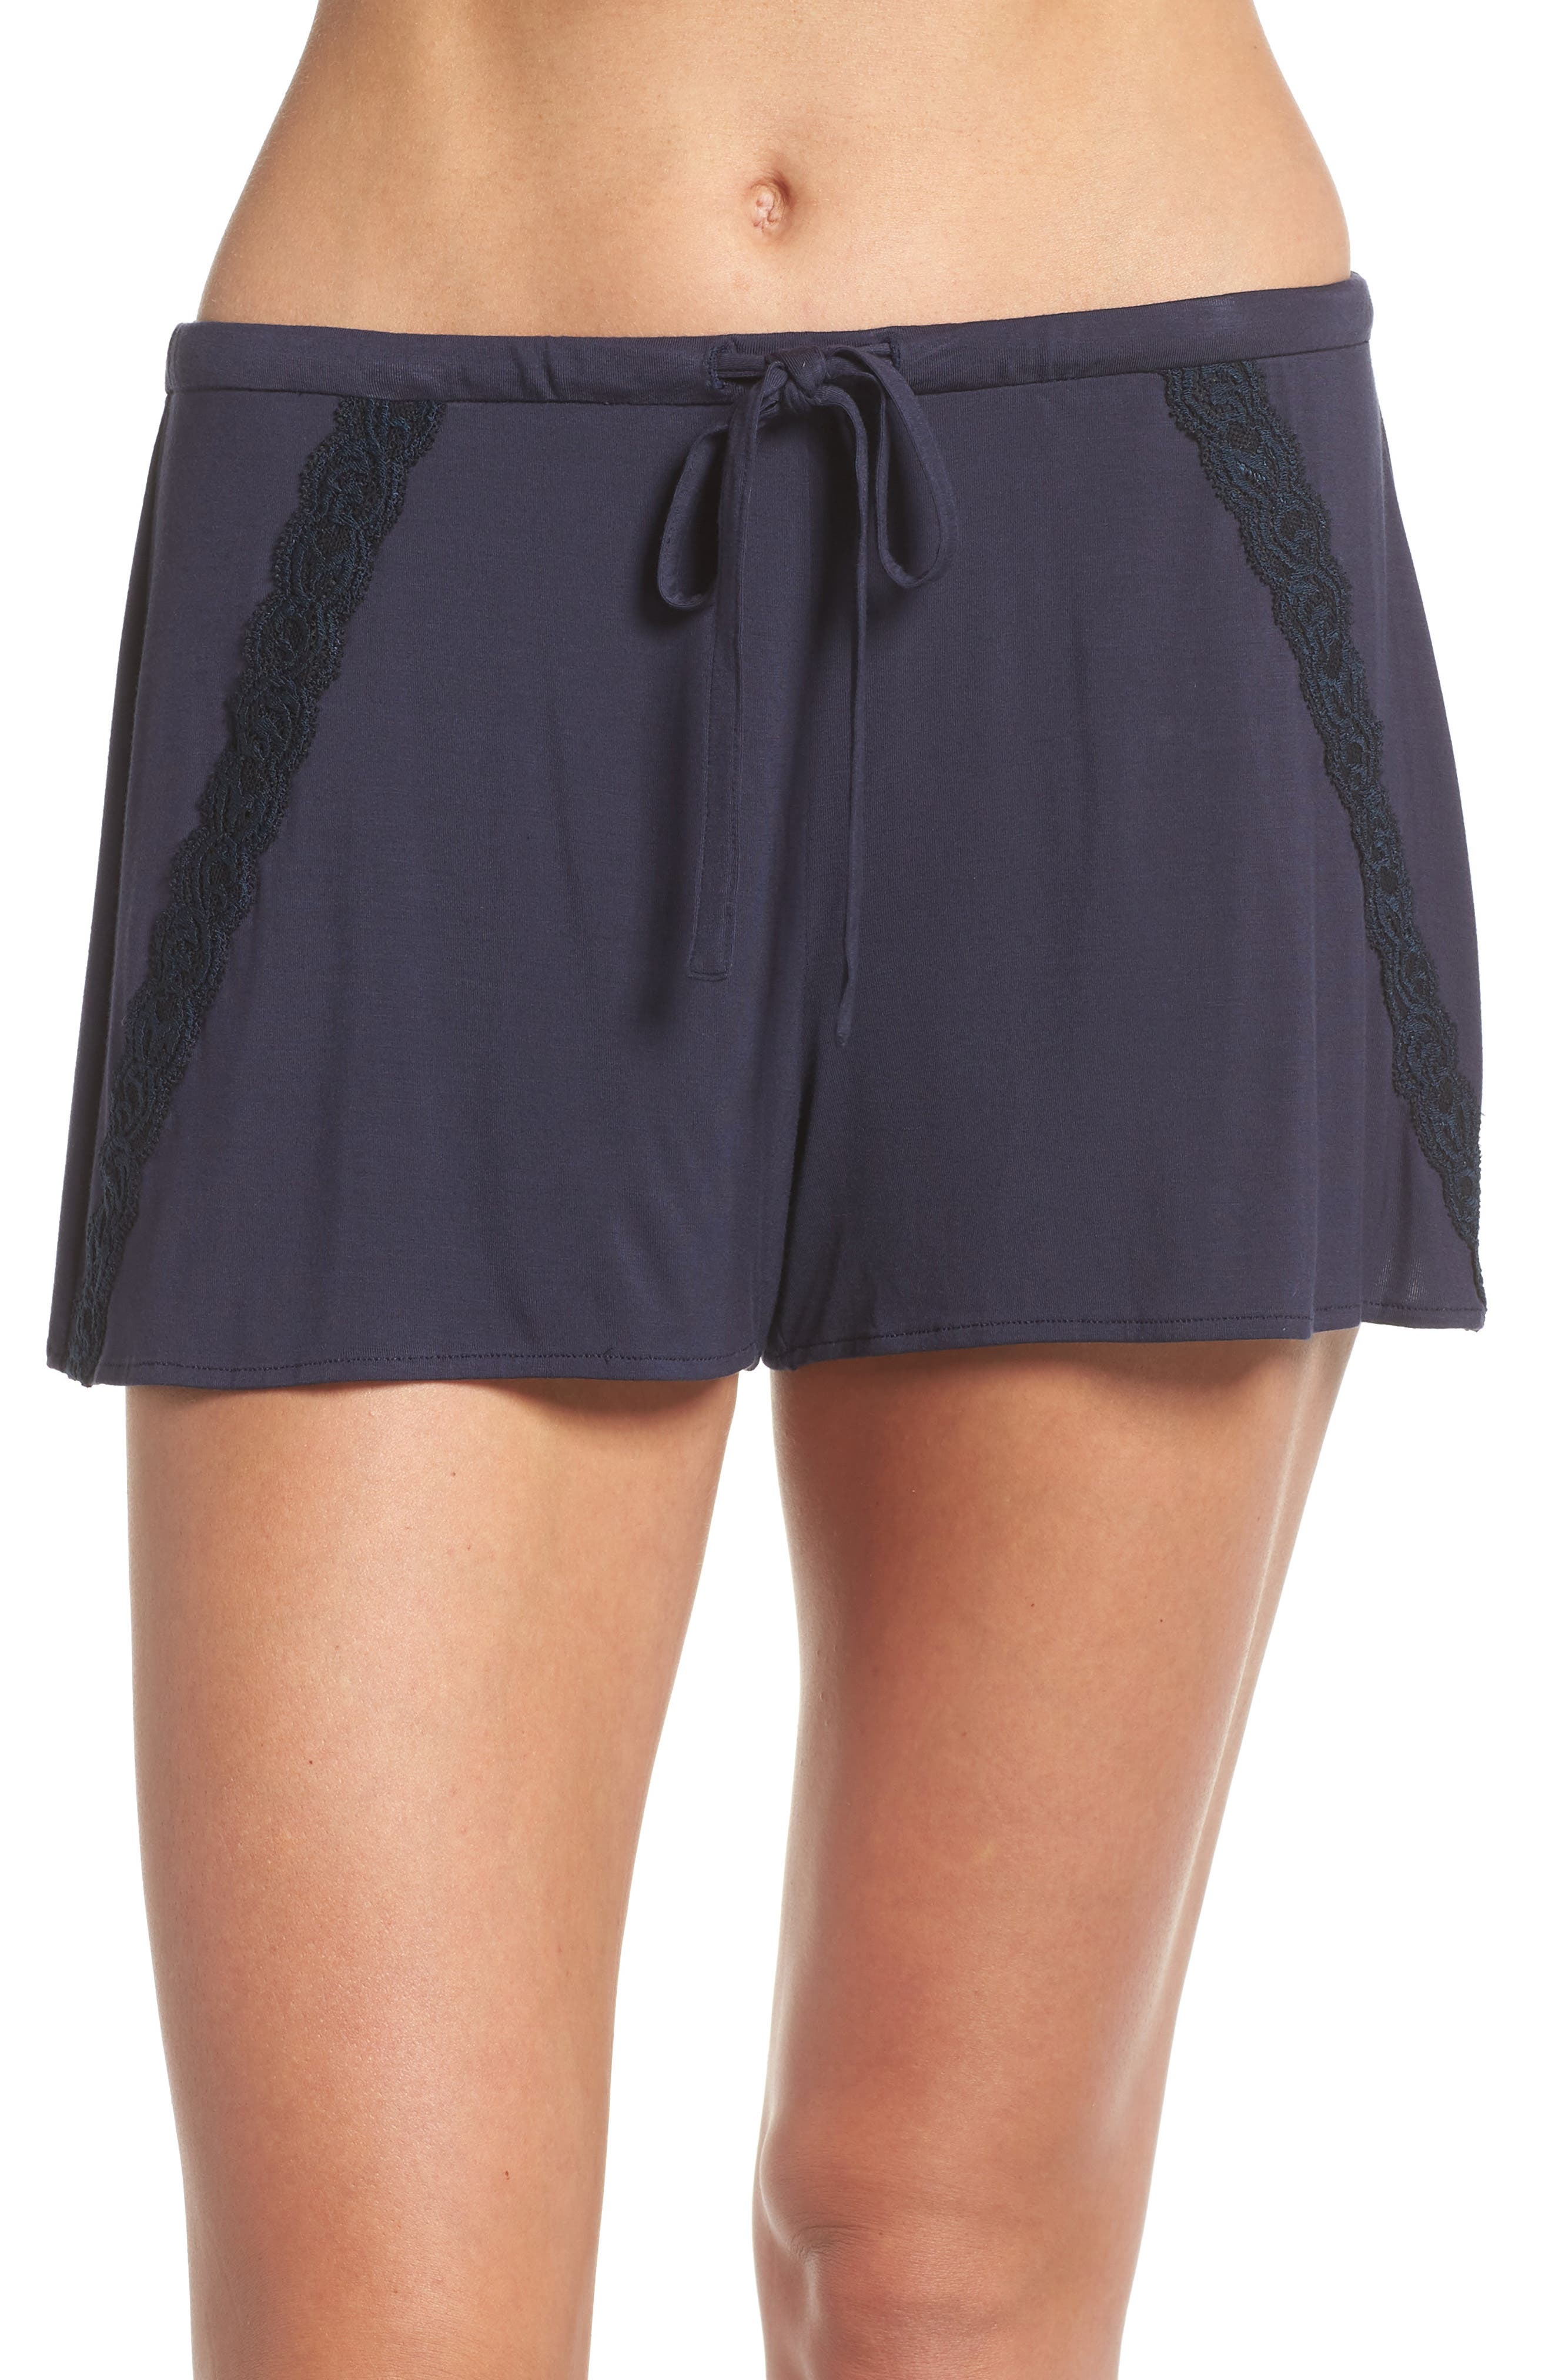 Feathers Essential Pajama Shorts,                             Main thumbnail 1, color,                             Night Blue